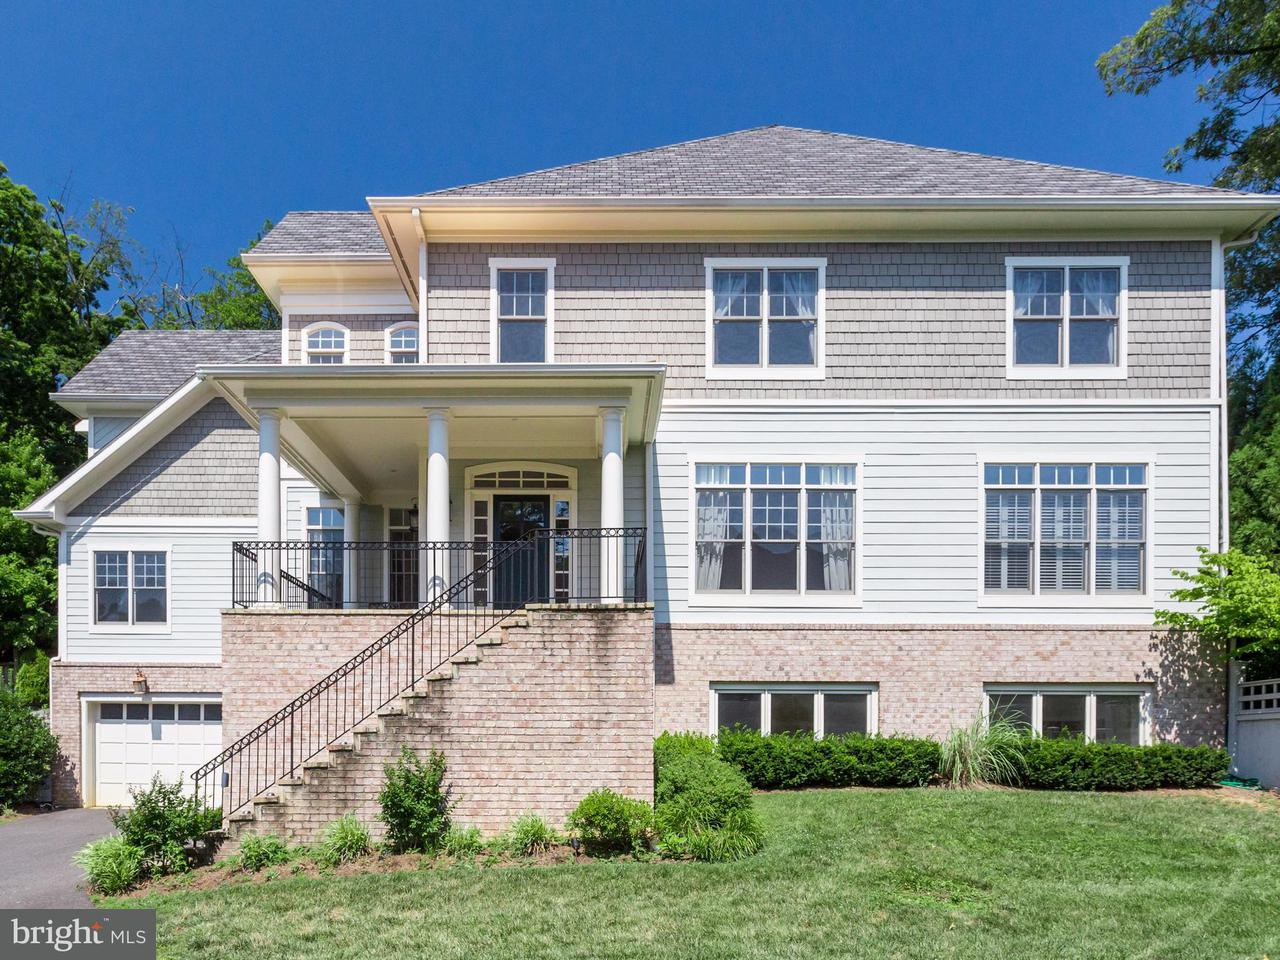 Single Family Home for Sale at 2823 23RD RD N 2823 23RD RD N Arlington, Virginia 22201 United States